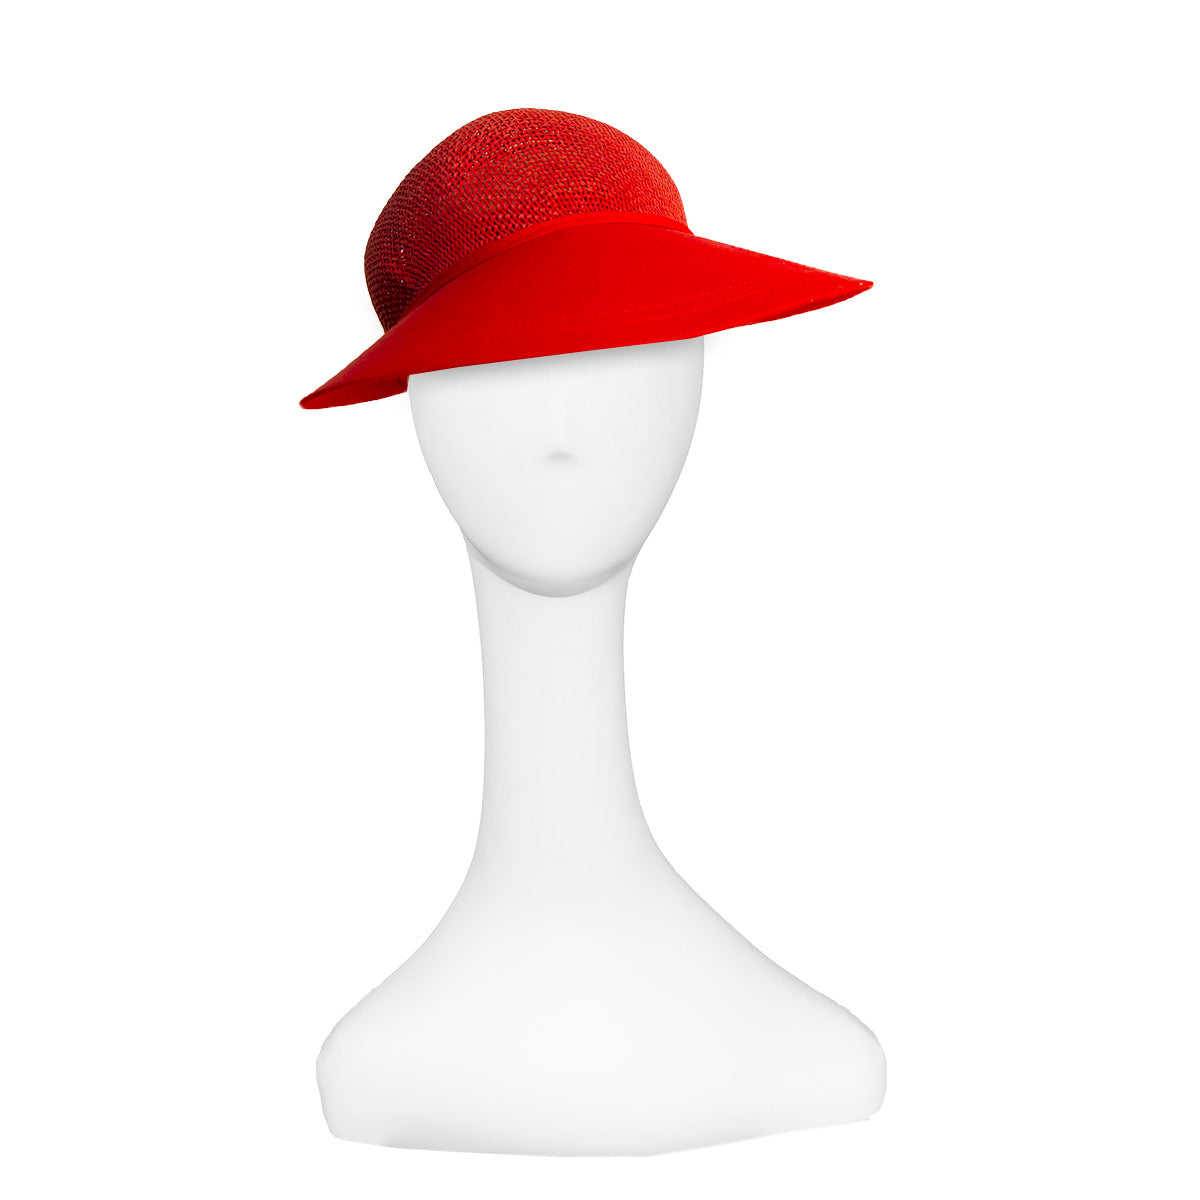 Ladies Red Straw Visor Cap 2, Fits Most